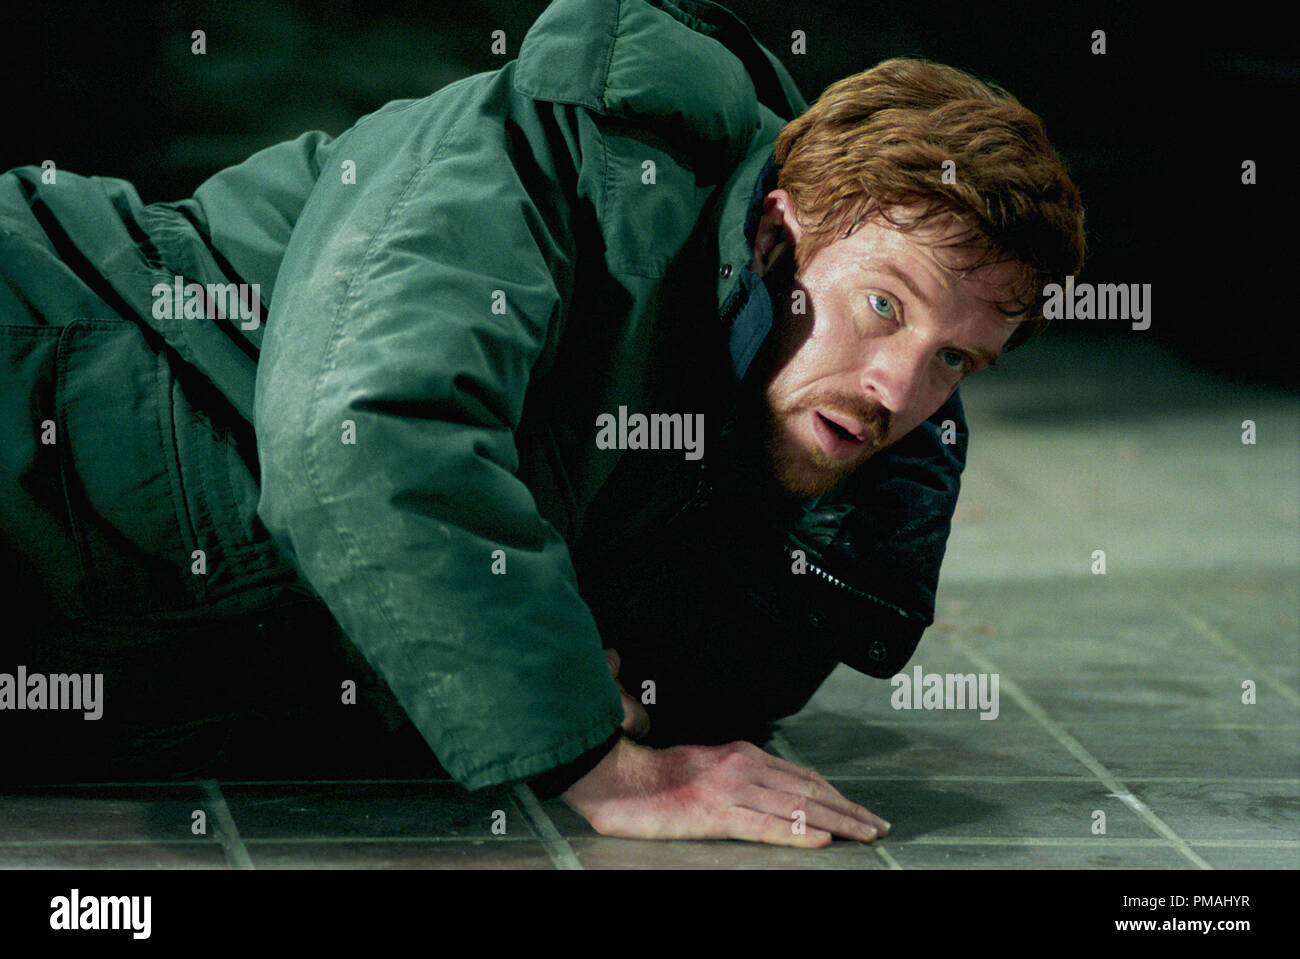 DAMIAN LEWIS in Castle Rock Entertainment's and Village Roadshow Pictures' supernatural thriller 'Dreamcatcher,' distributed by Warner Bros. Pictures. 2003 - Stock Image